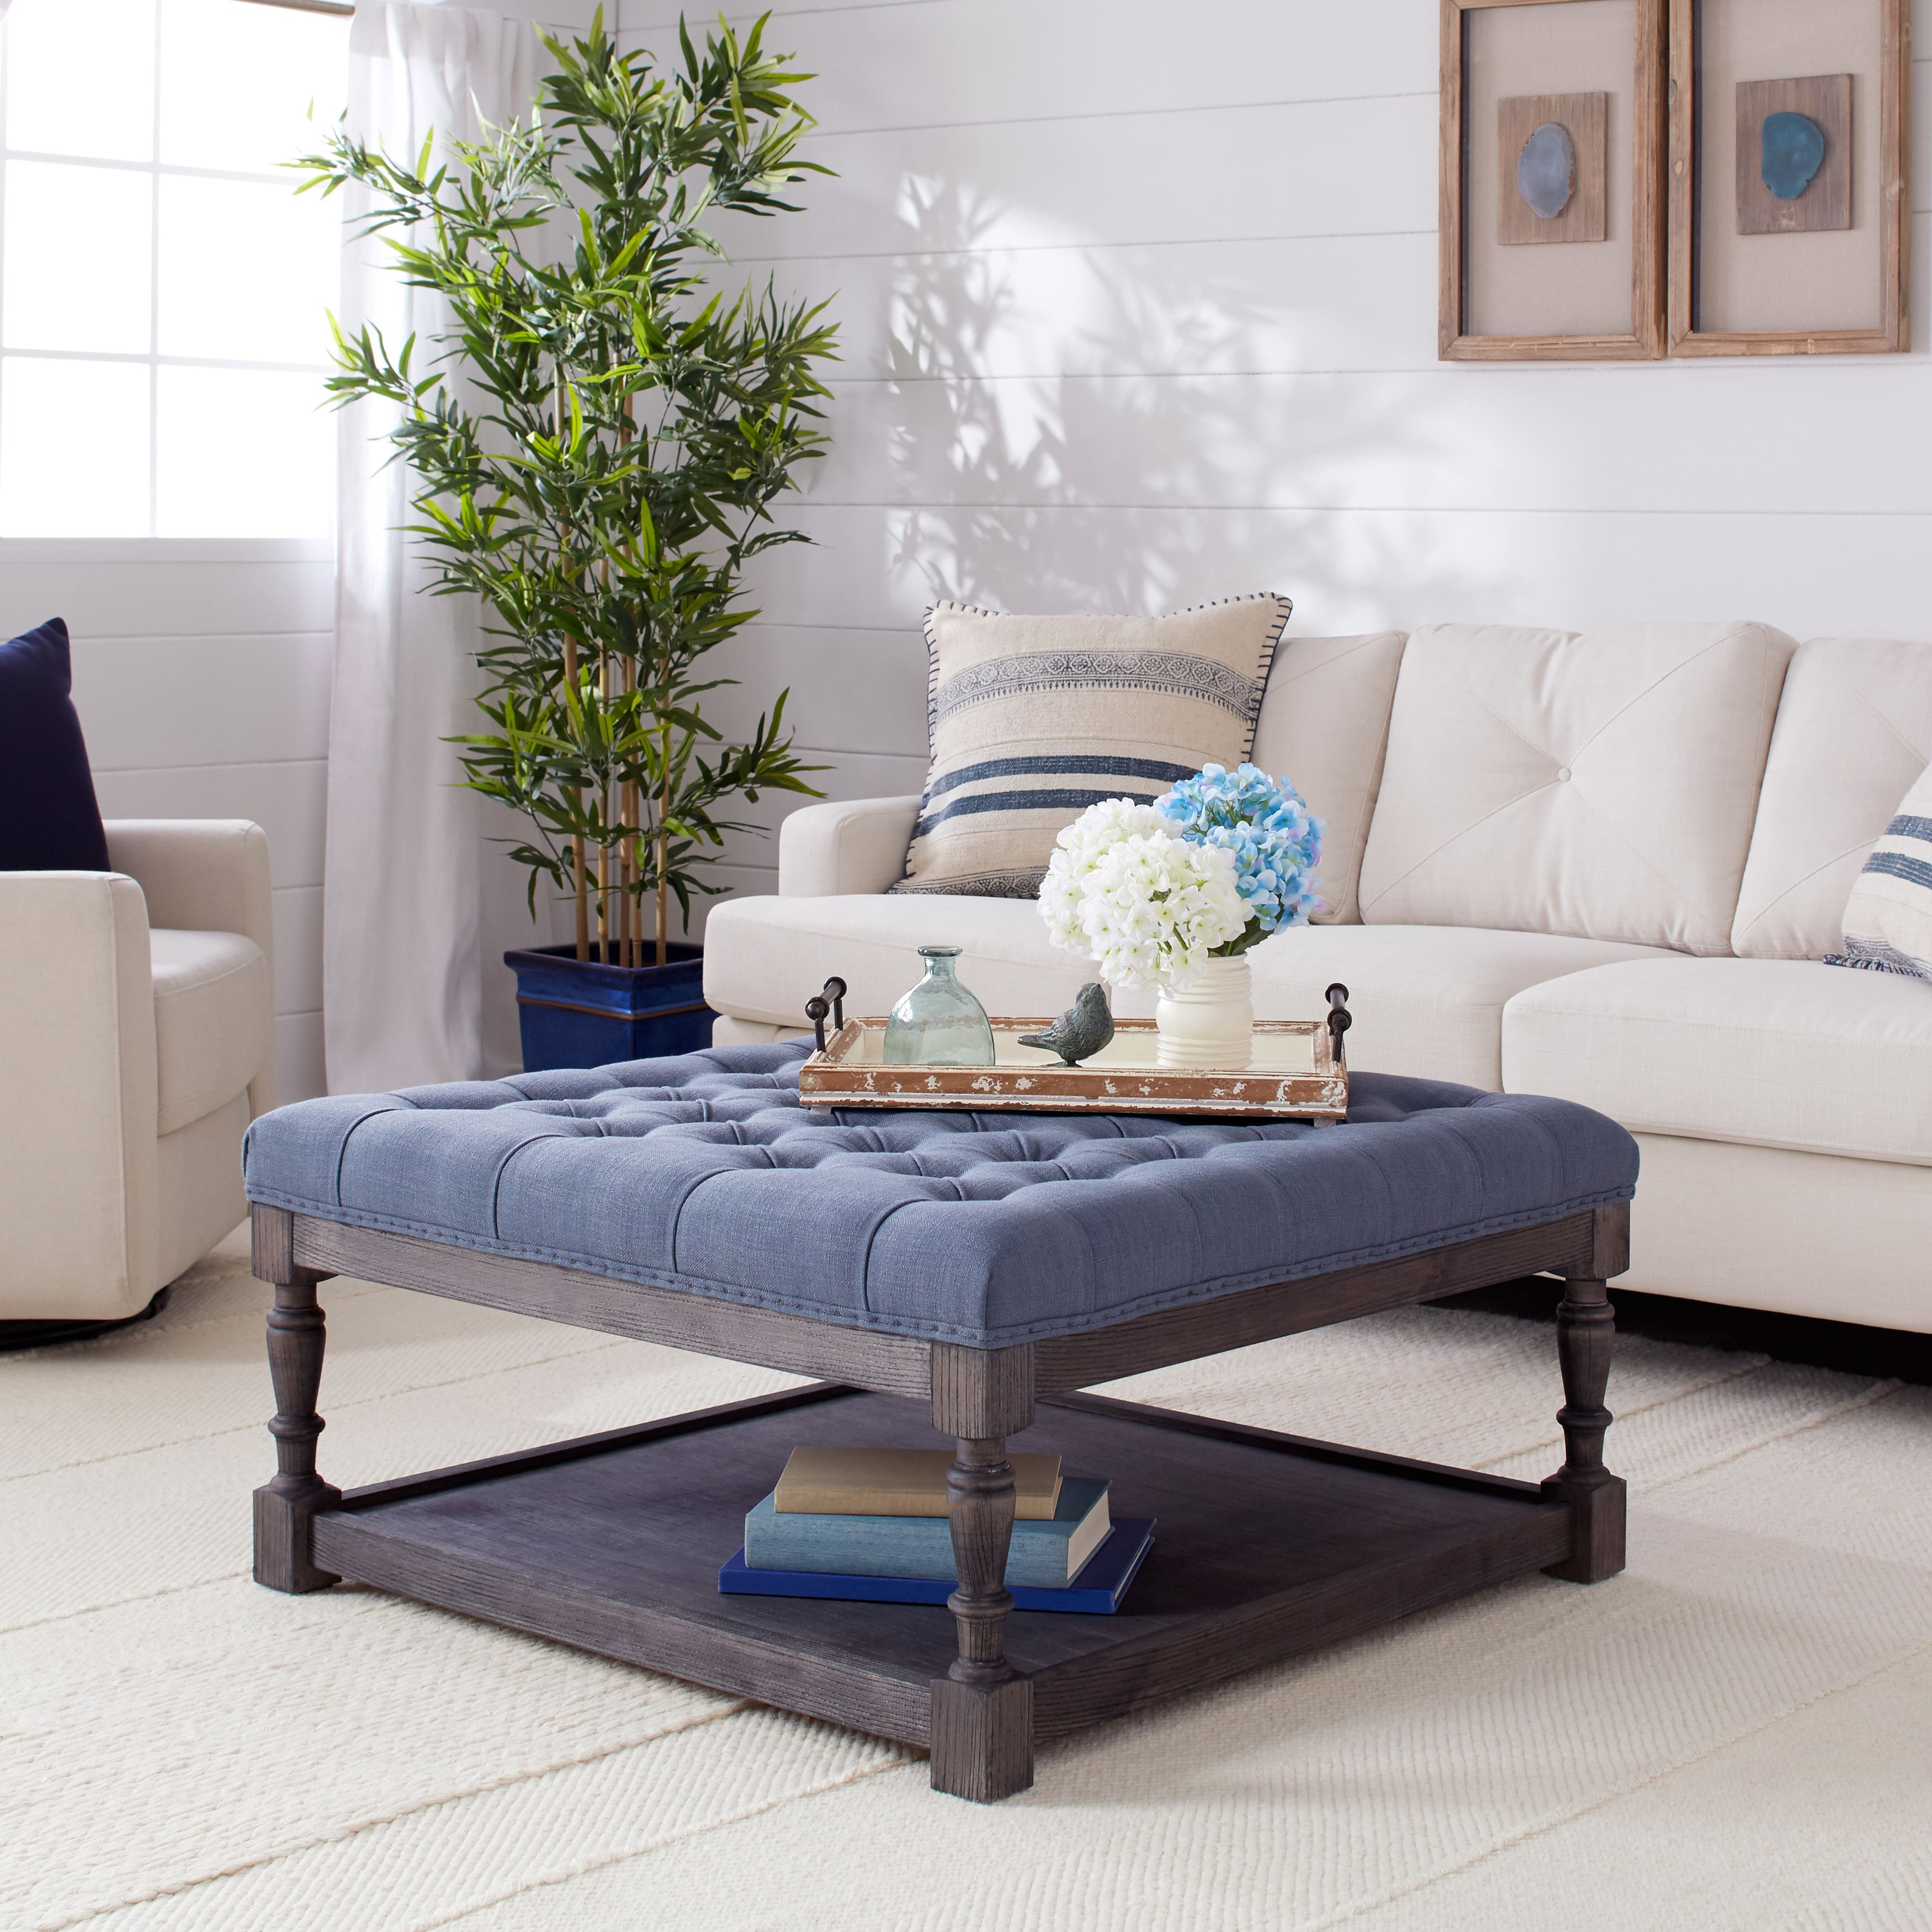 Buy Ottomans Amp Storage Ottomans Online At Overstock Our